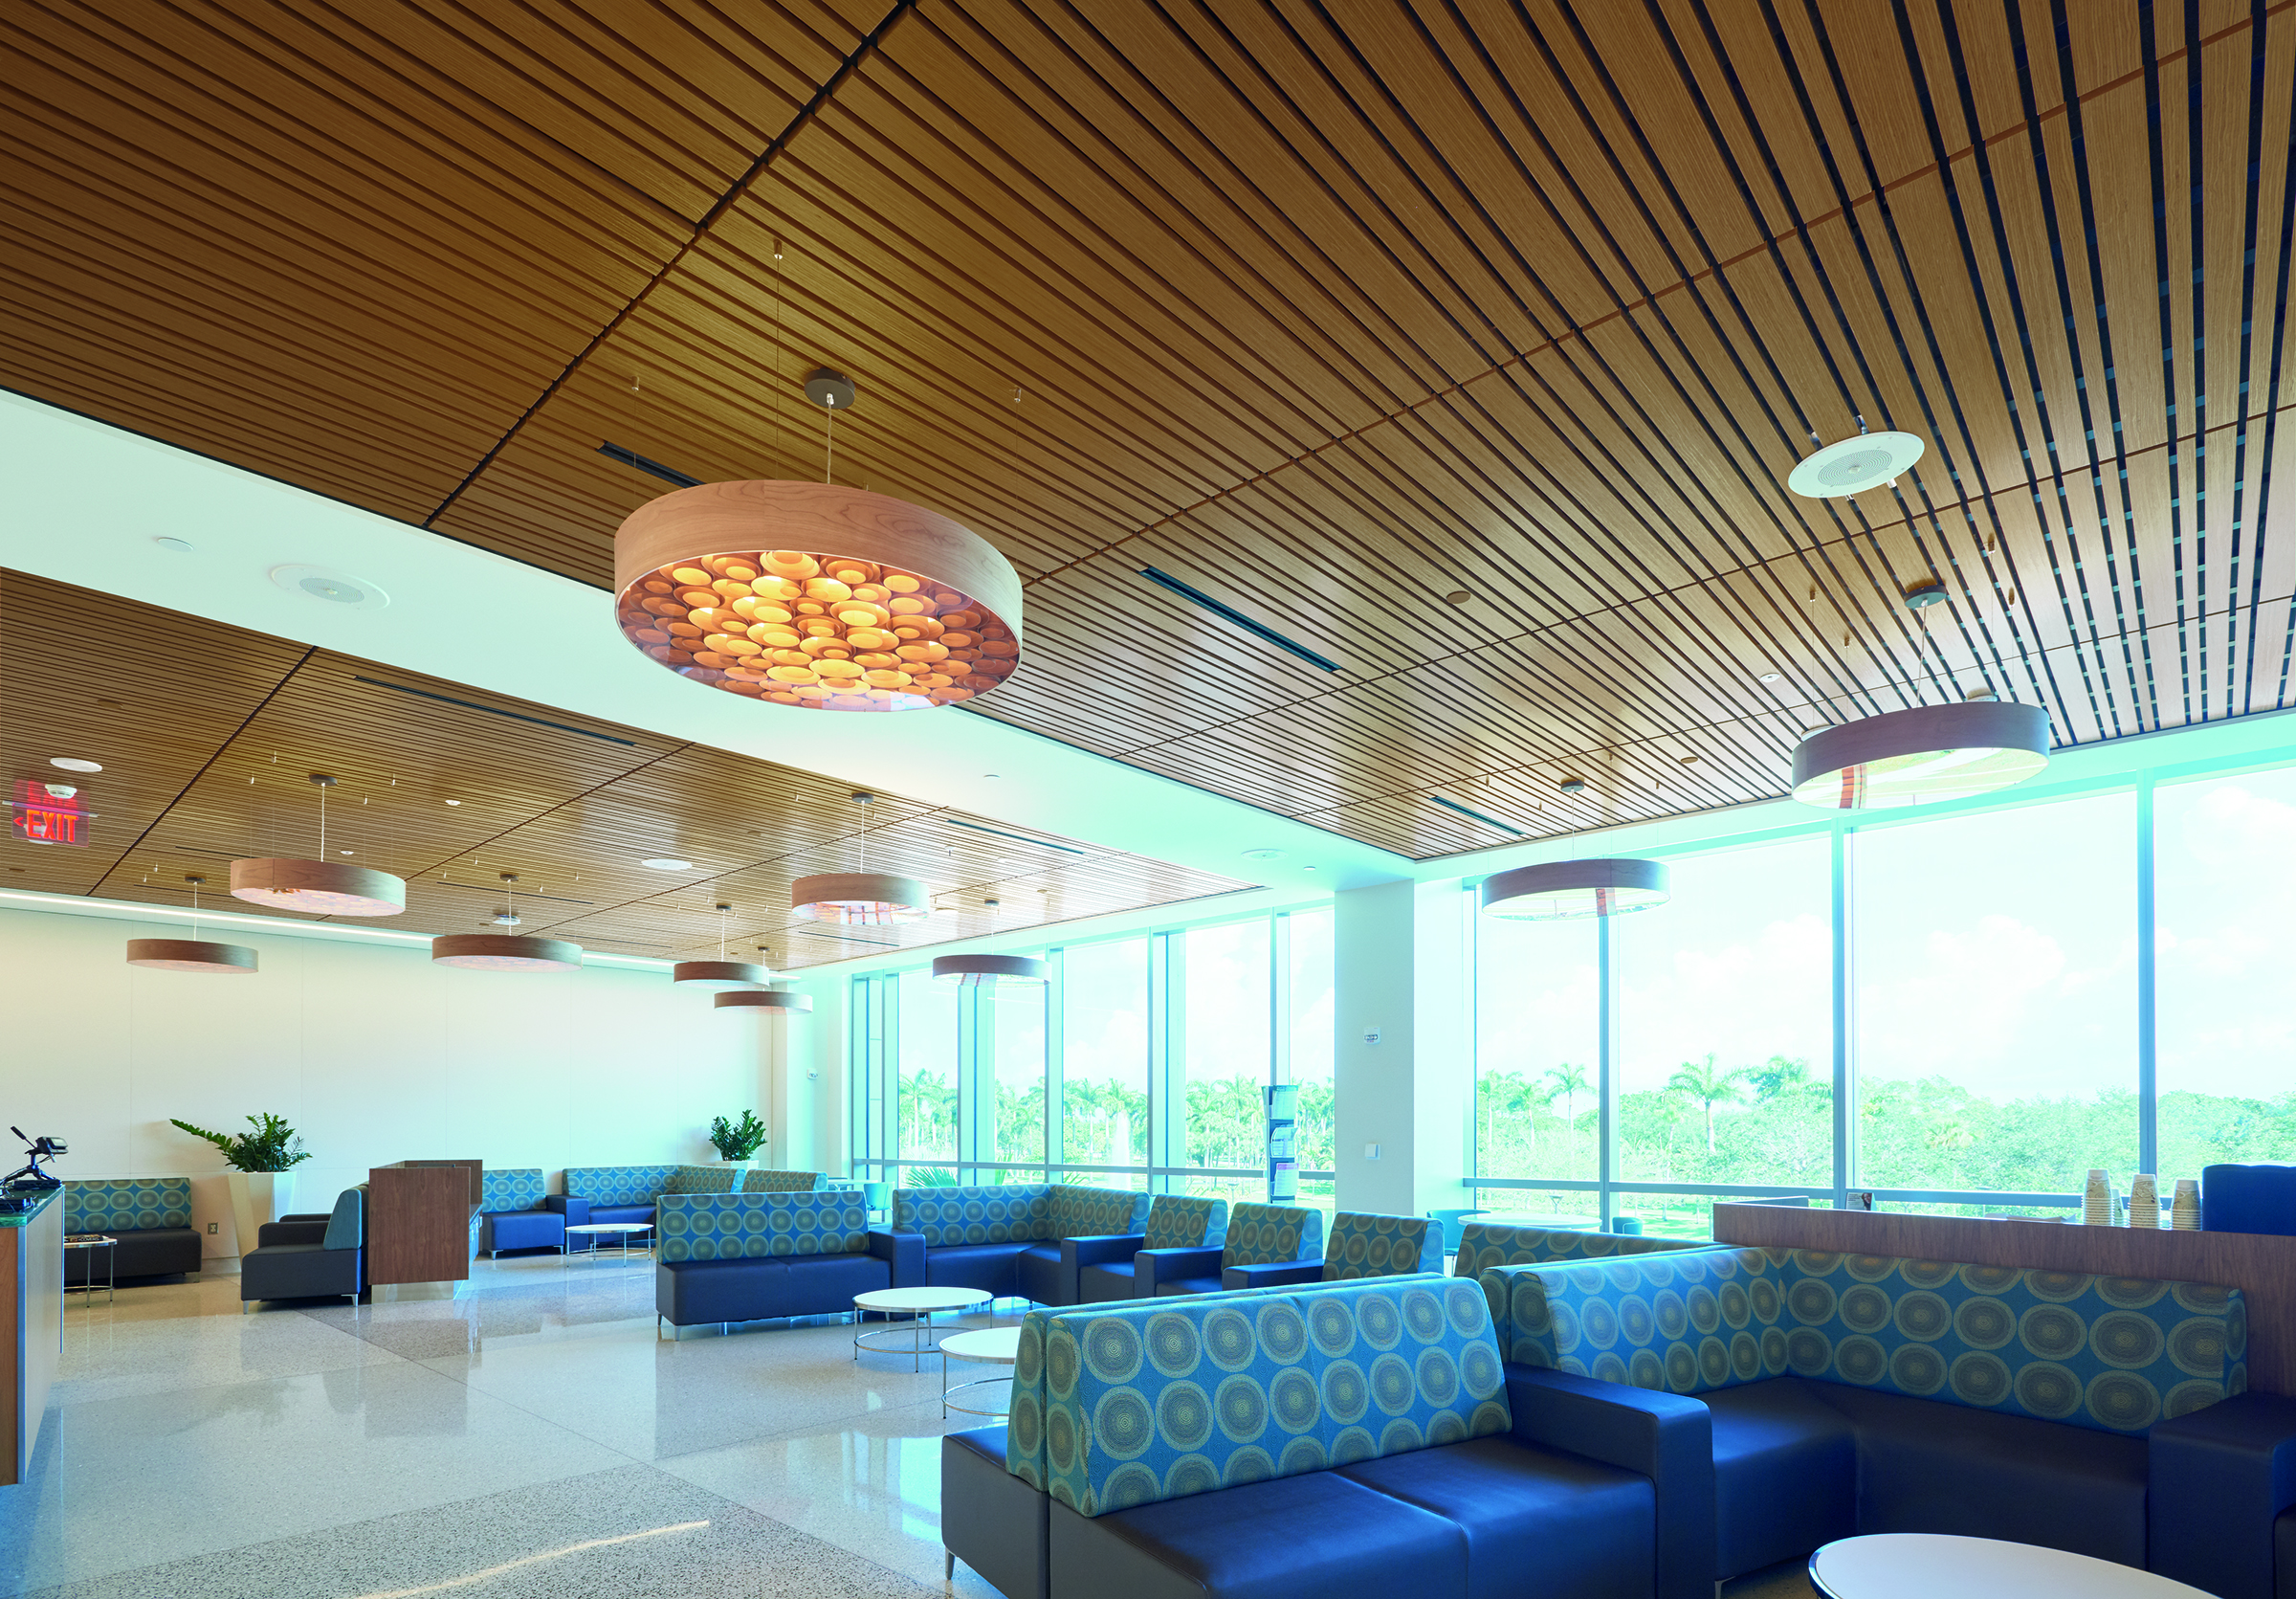 Wood Ceilings Reinforce Connection To Nature At South